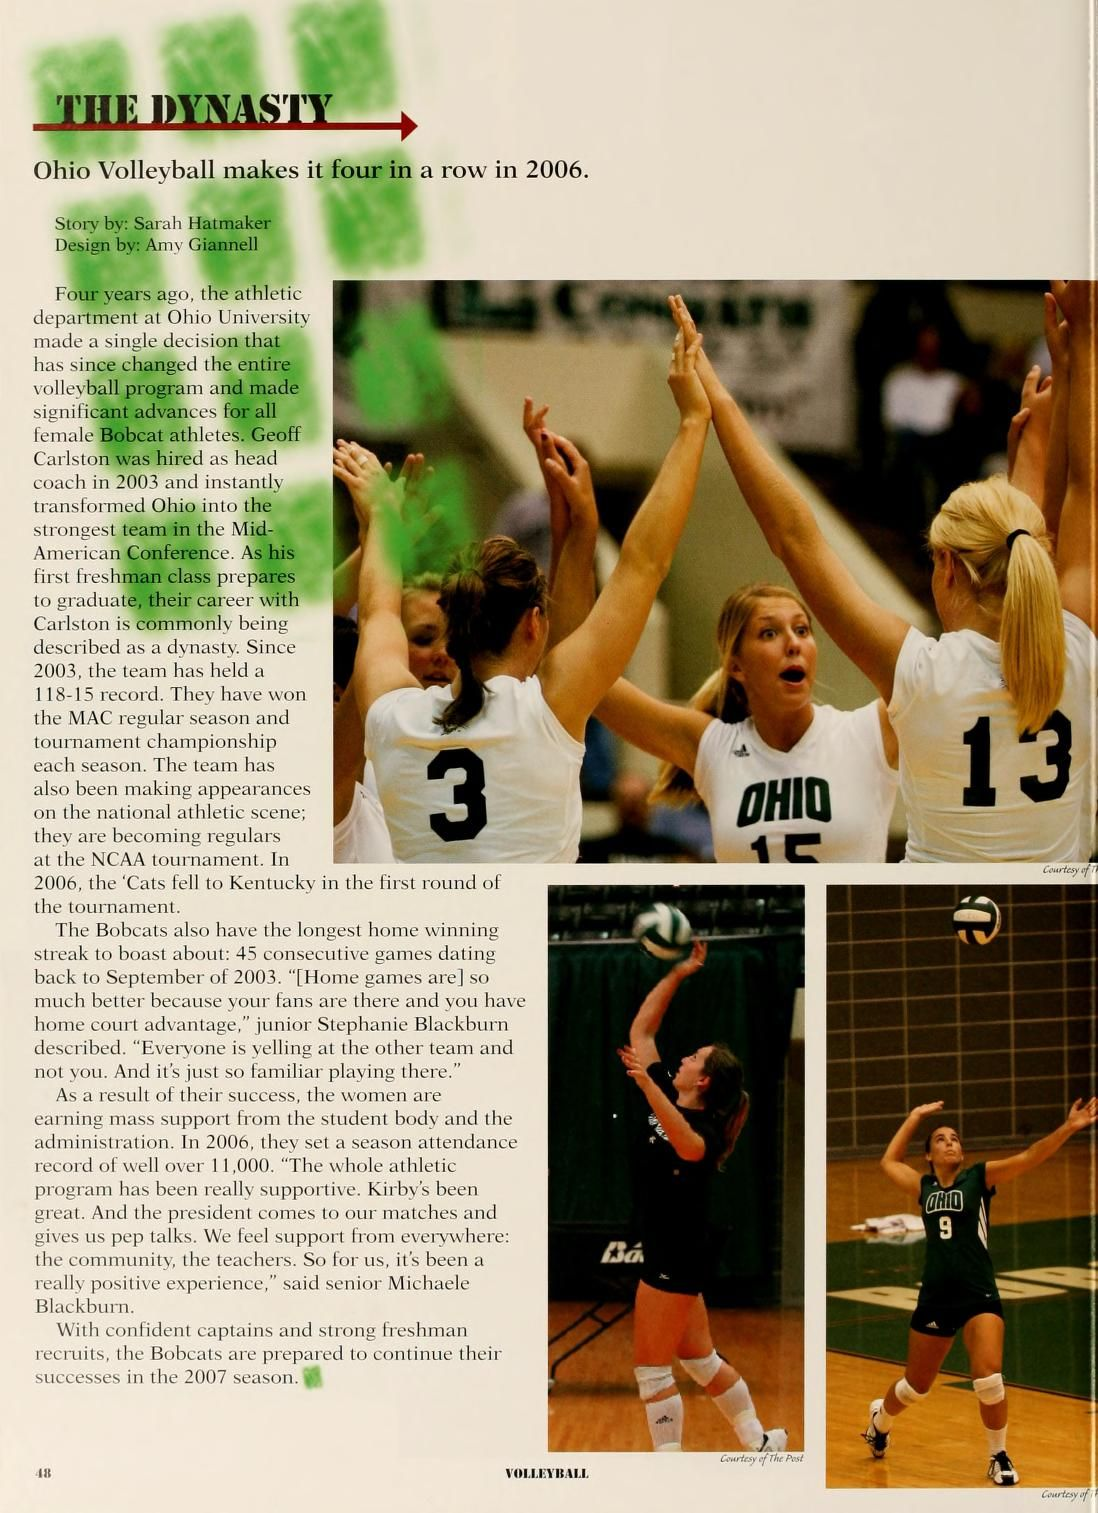 Athena Yearbook 2007 The Dynasty Ohio Volleyball Makes It Four In A Row In 2006 Ohio University Archives Ohio University University Ohio